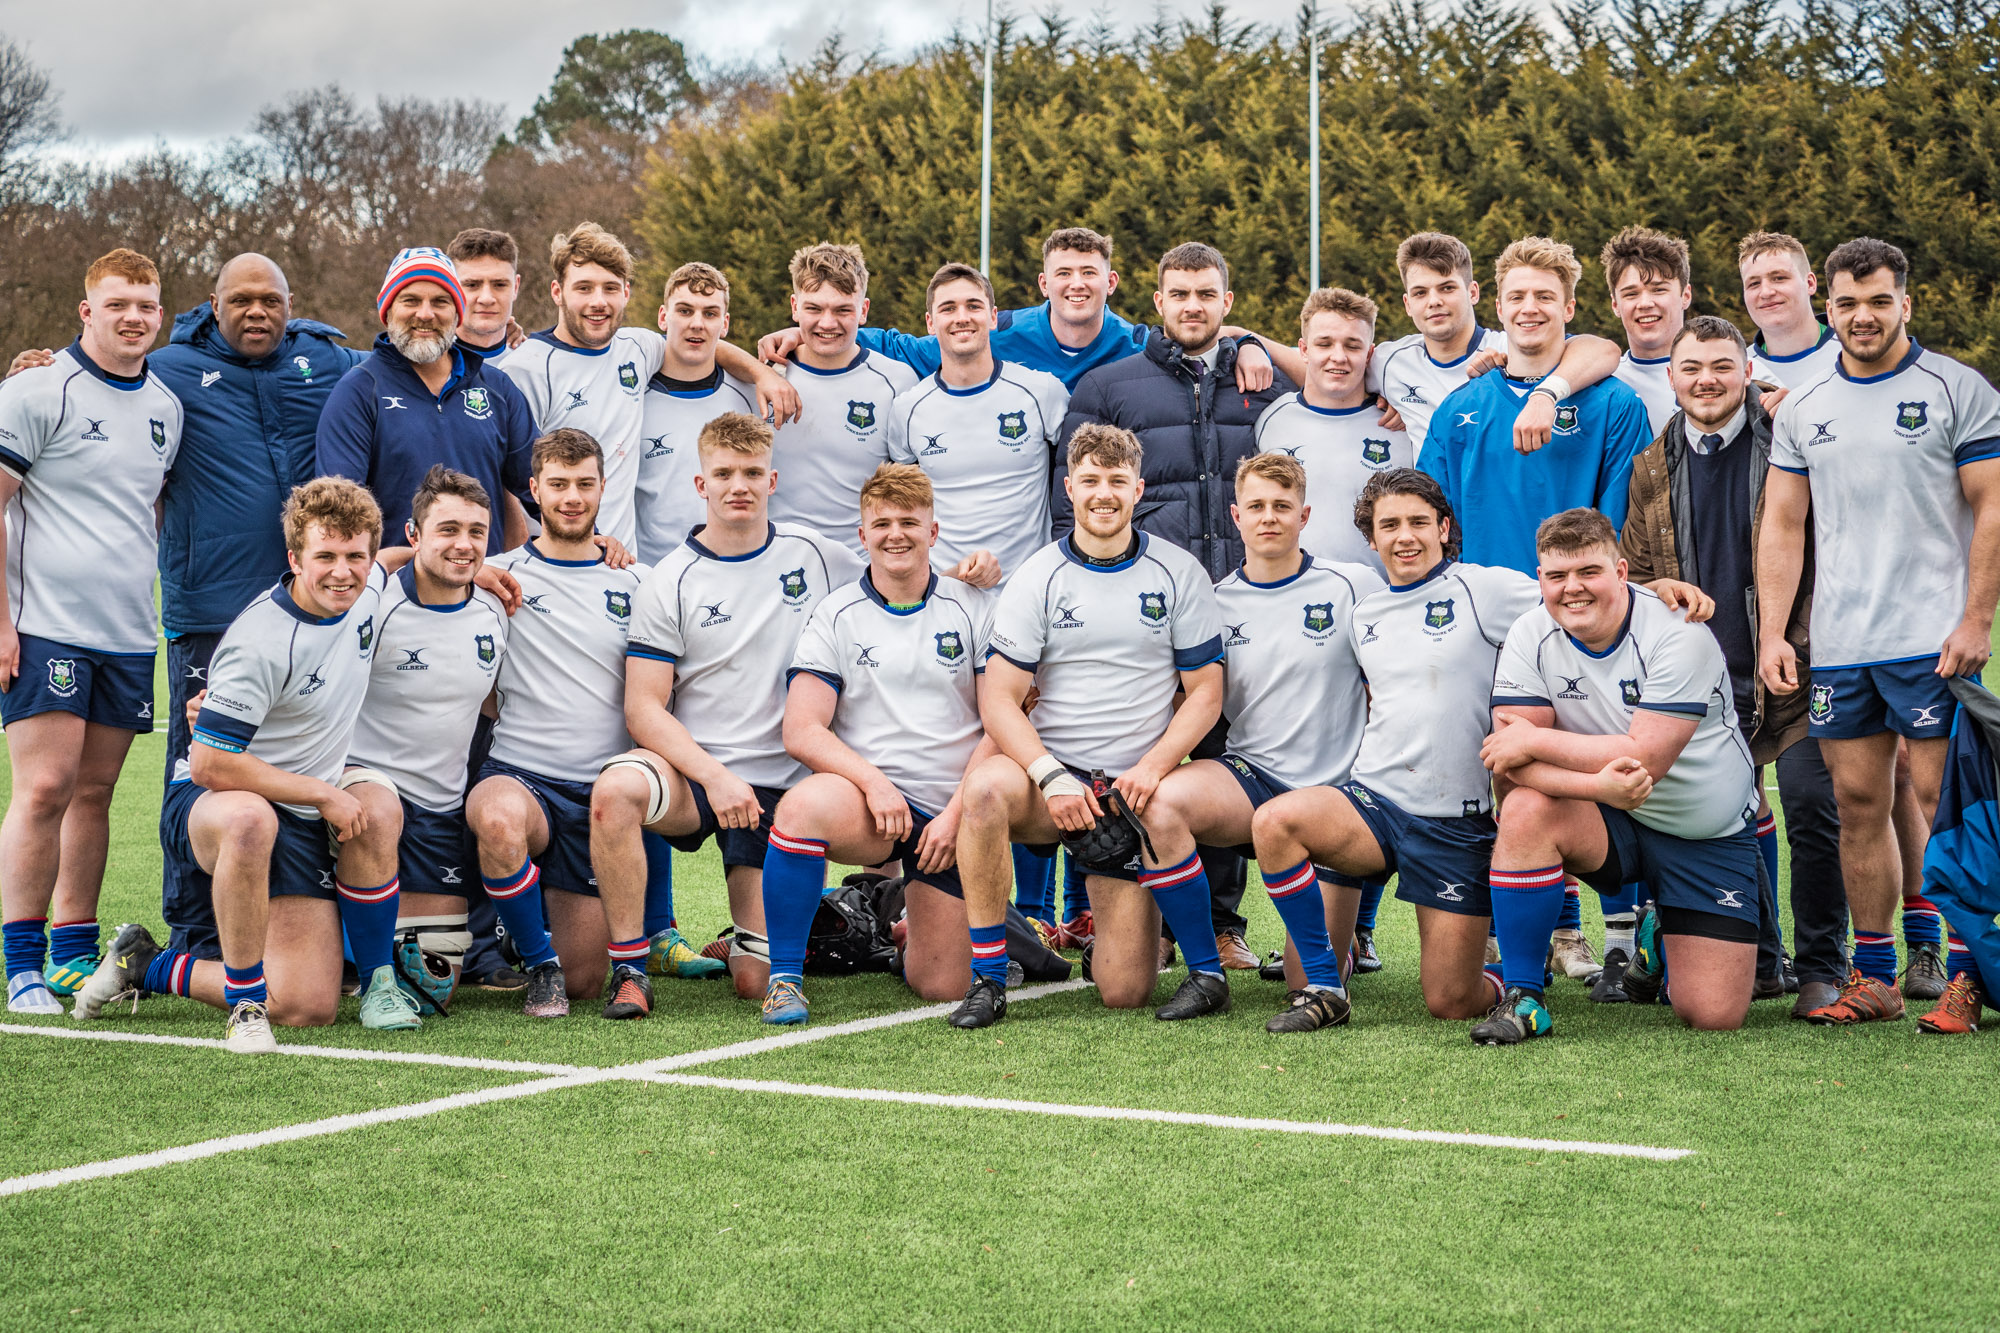 Yorkshire Under 20s: National champions once more